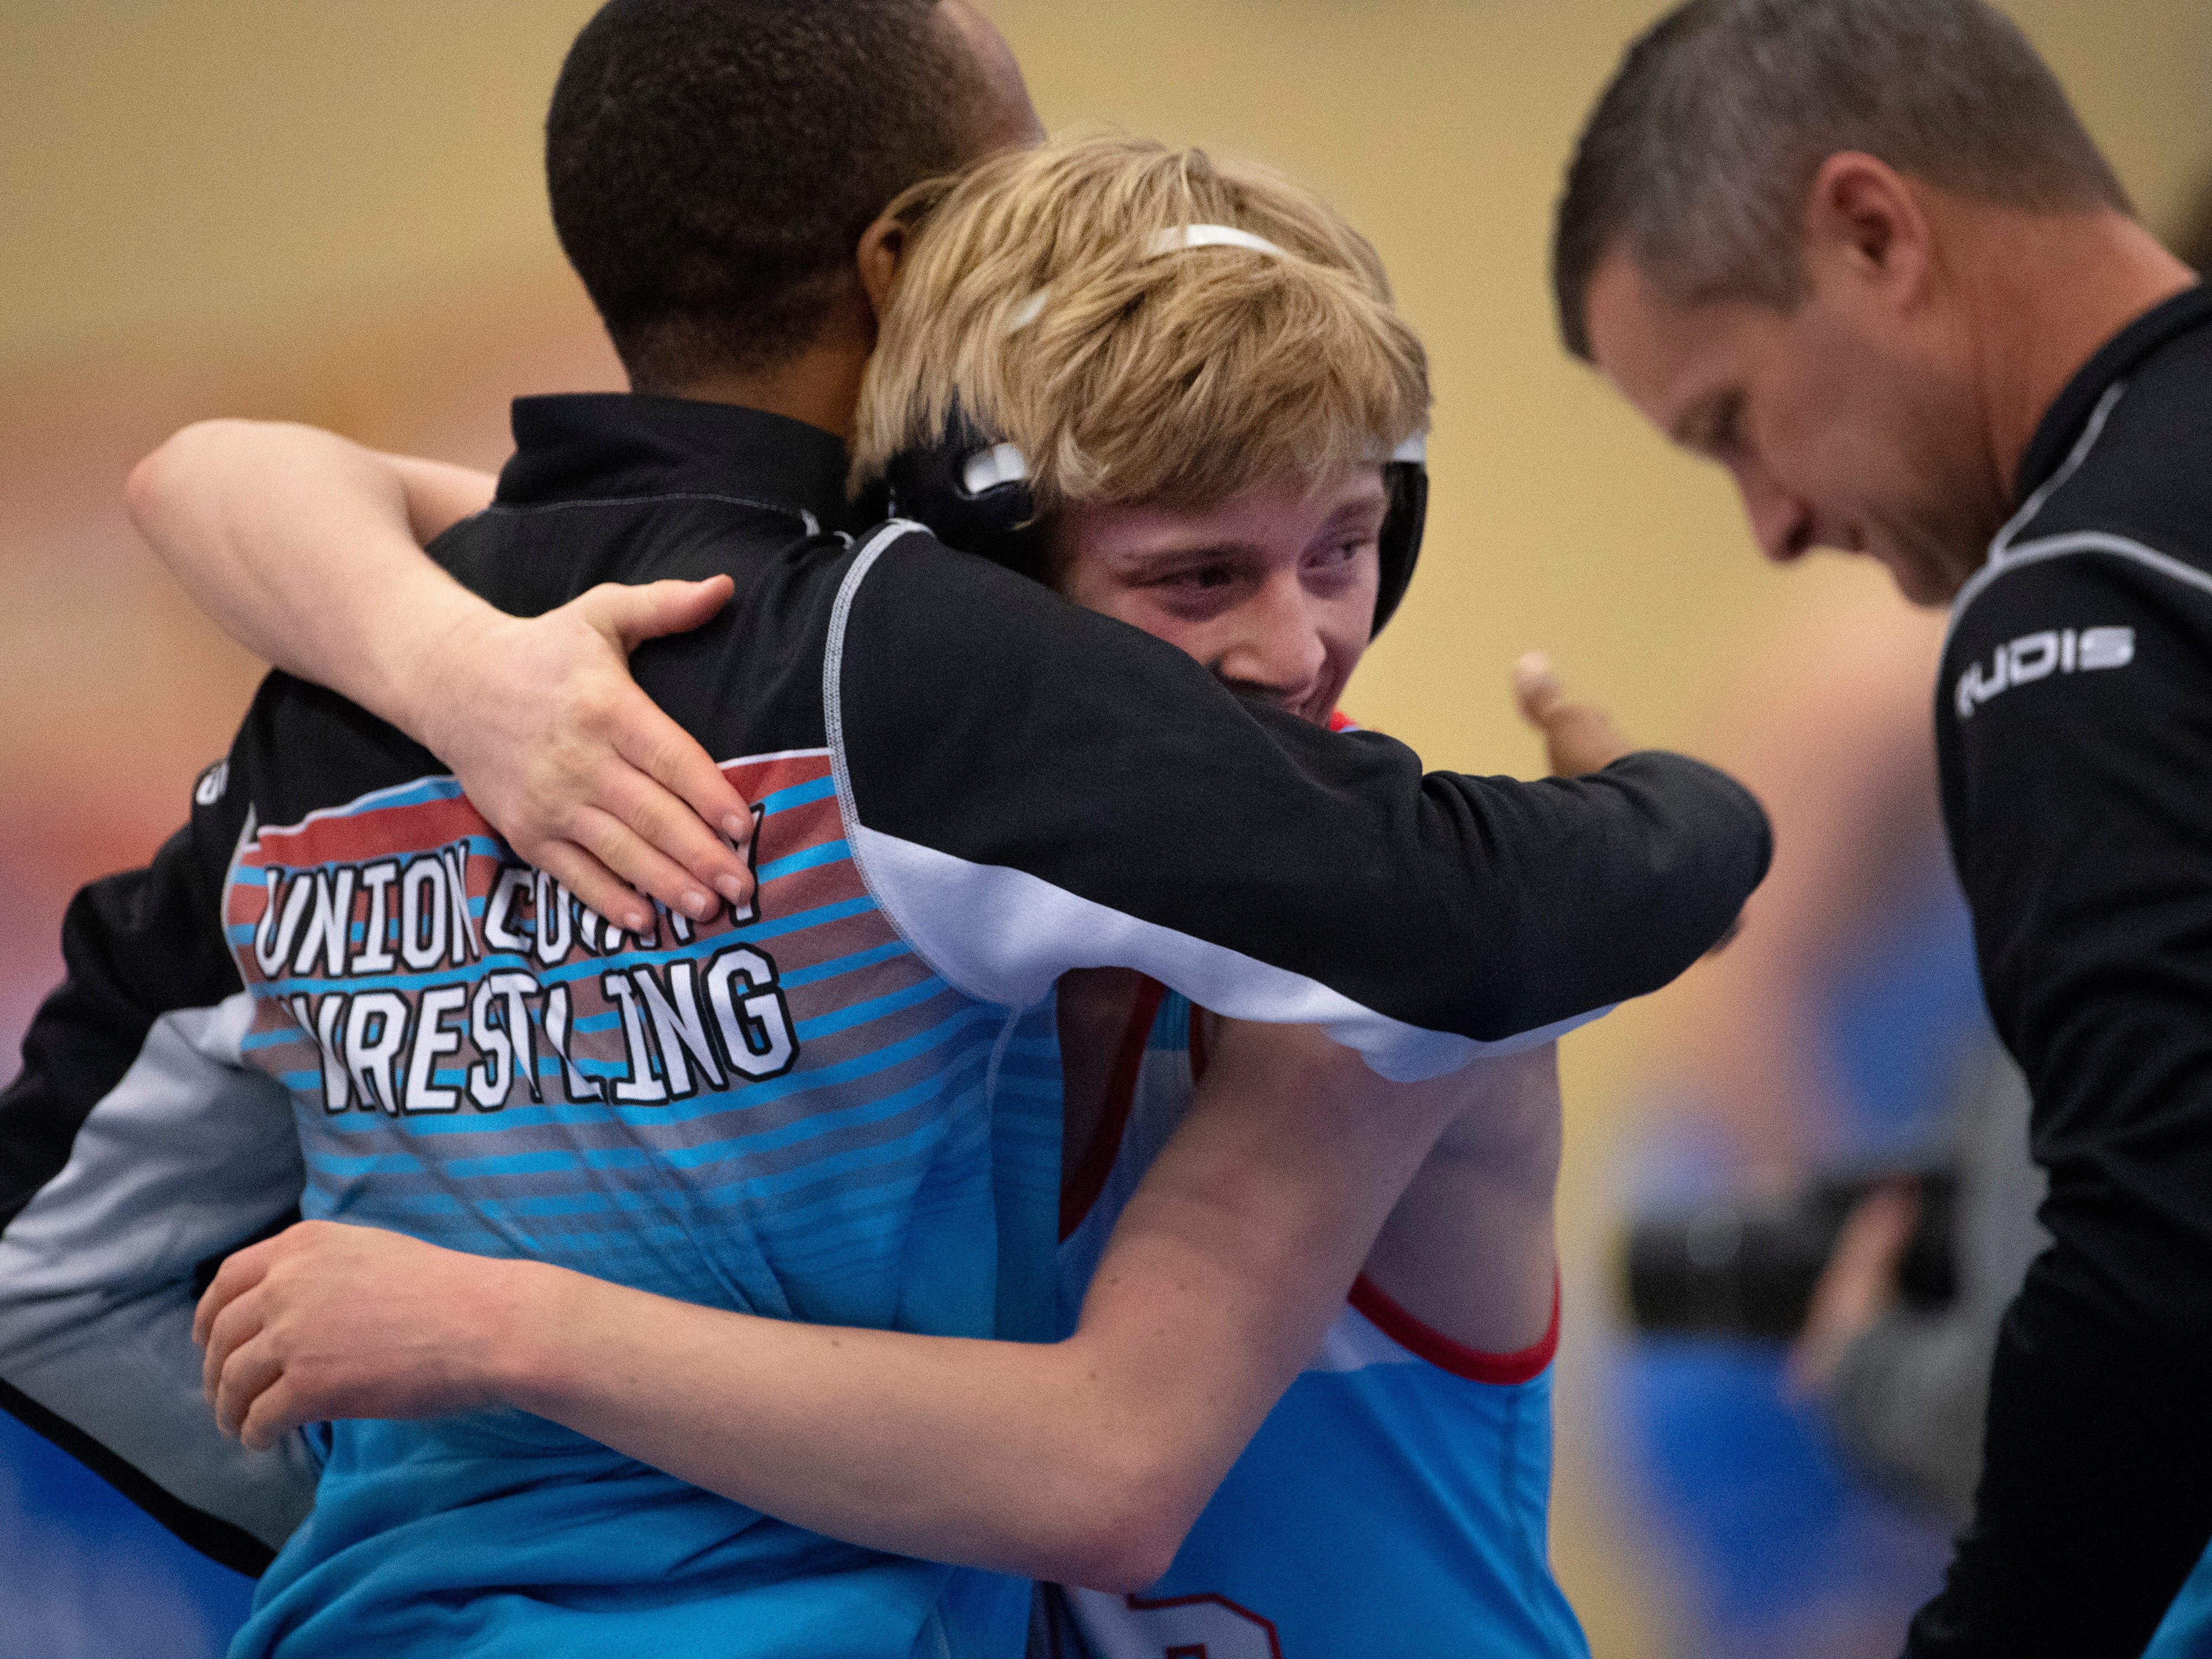 Union County's Trayce Eckman gets a hug from coach Jarvis Elam after winning his 106-pound match in his first consolation bracket match at the KHSAA State Wrestling Championships at the Alltech Arena in Lexington, Ky., Saturday afternoon. Eckman took home the third place medal for his efforts.